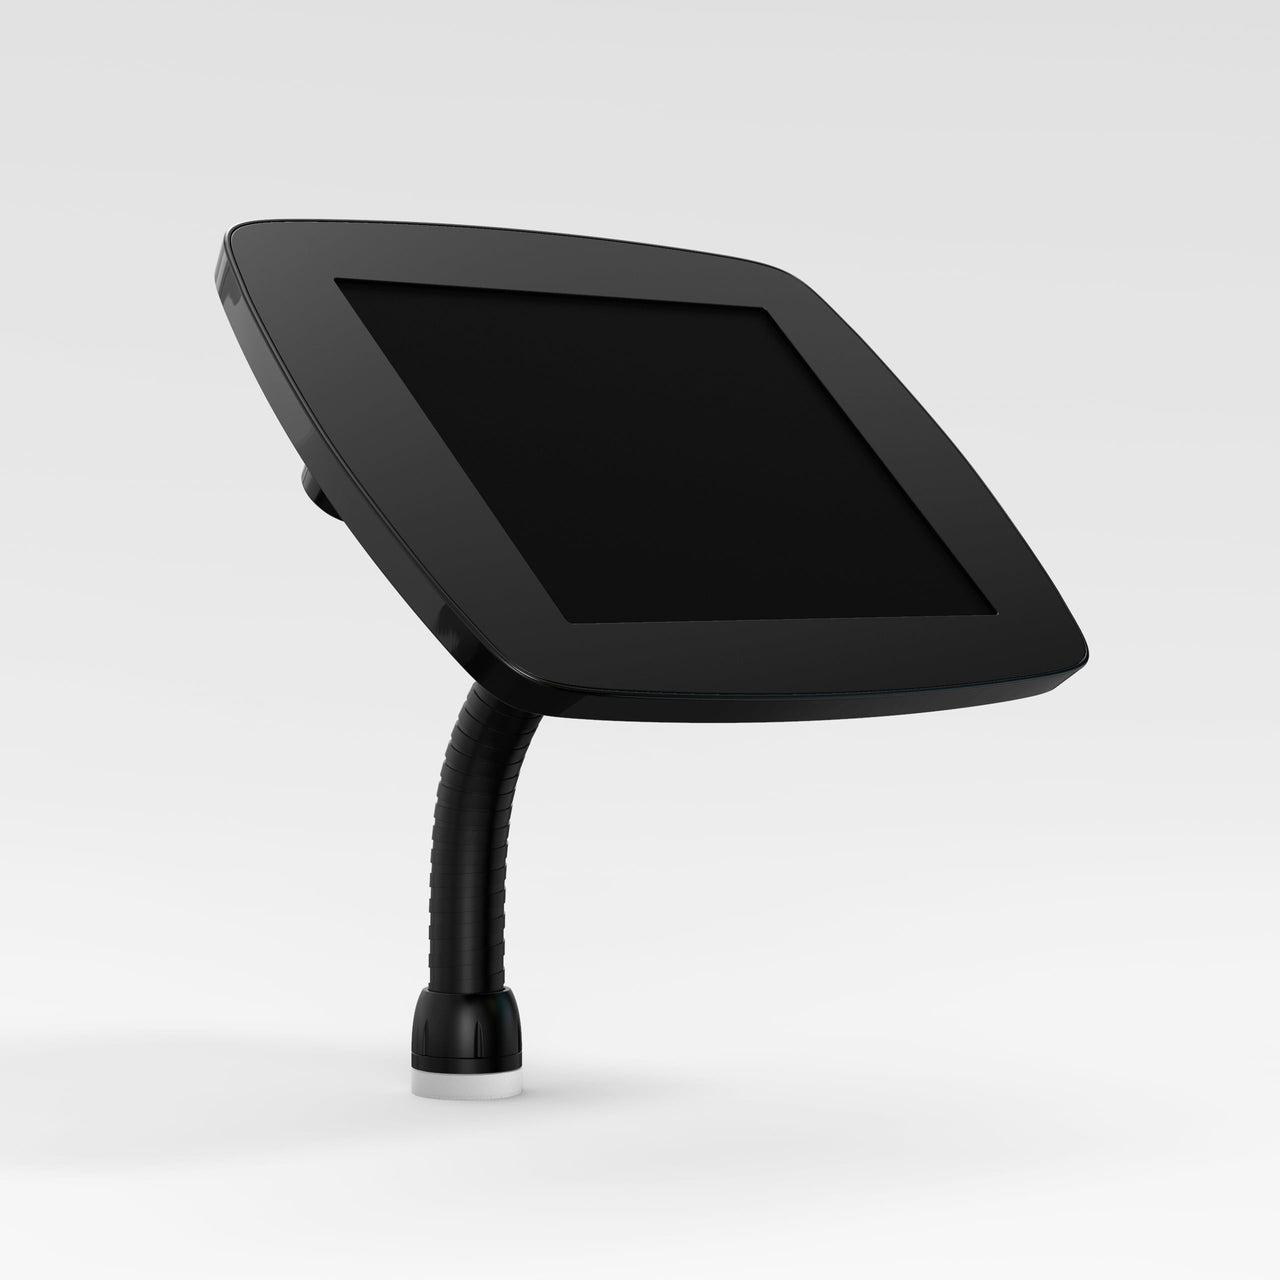 Bouncepad Flex - A secure tablet & iPad gooseneck stand in black.